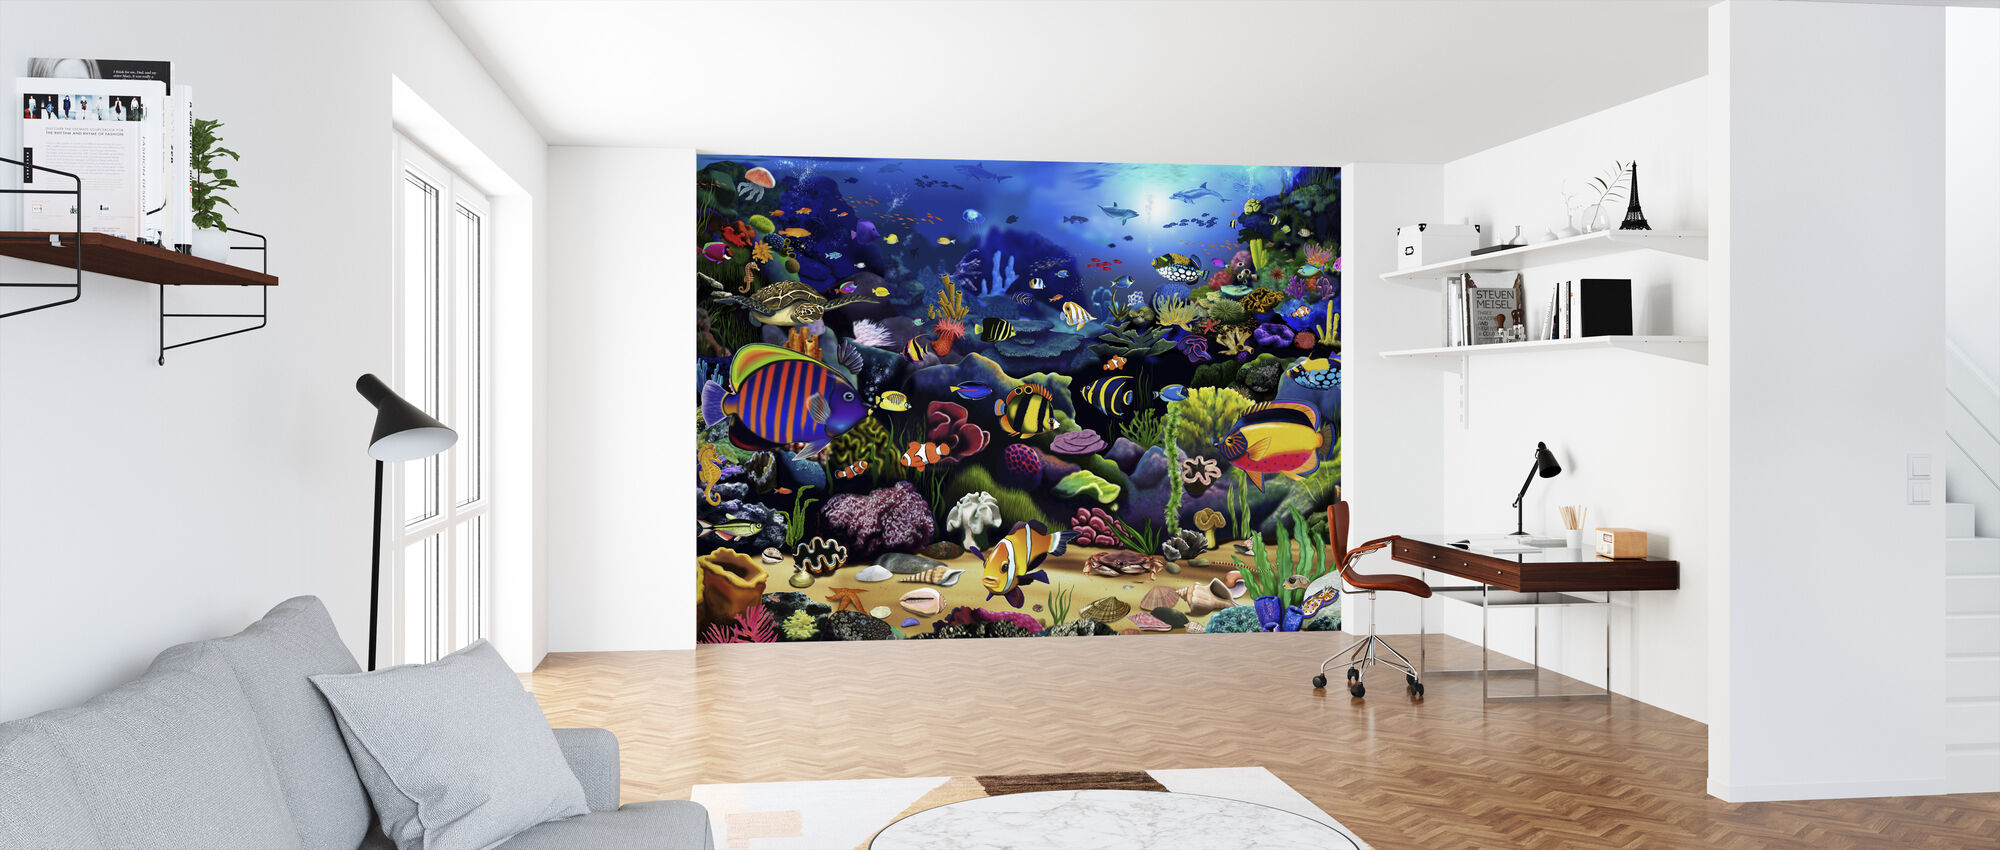 Colourful Reef - Wallpaper - Office